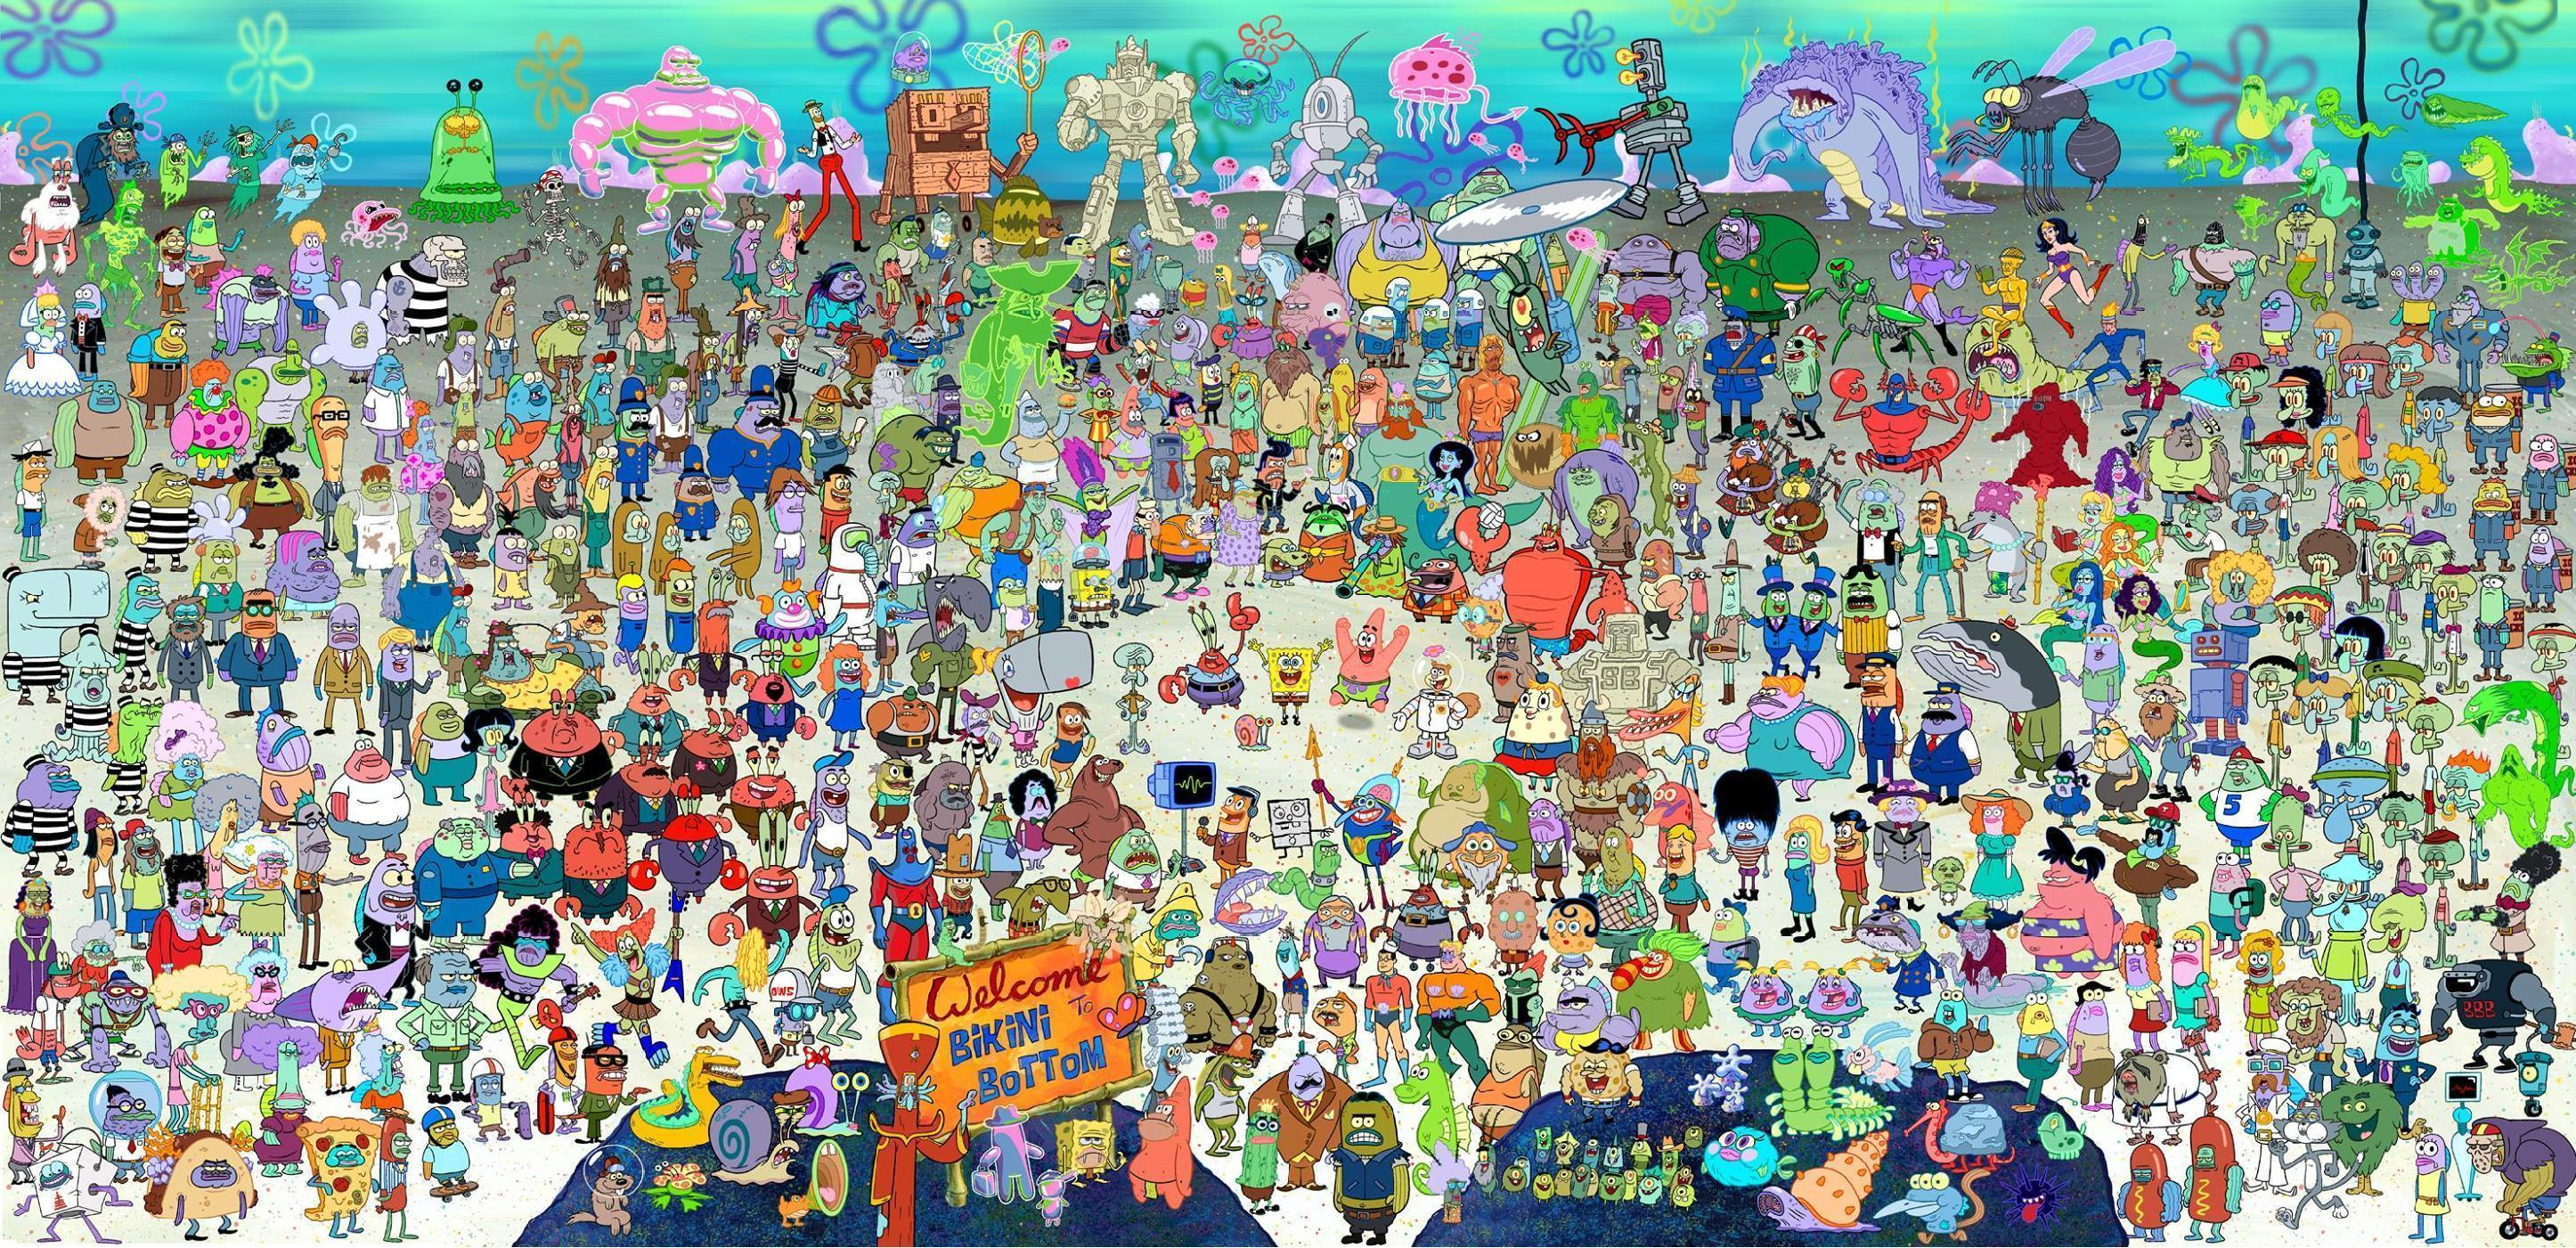 Spongebob Widescreen Background Wallpapers [276] - HD Wallpaper ...